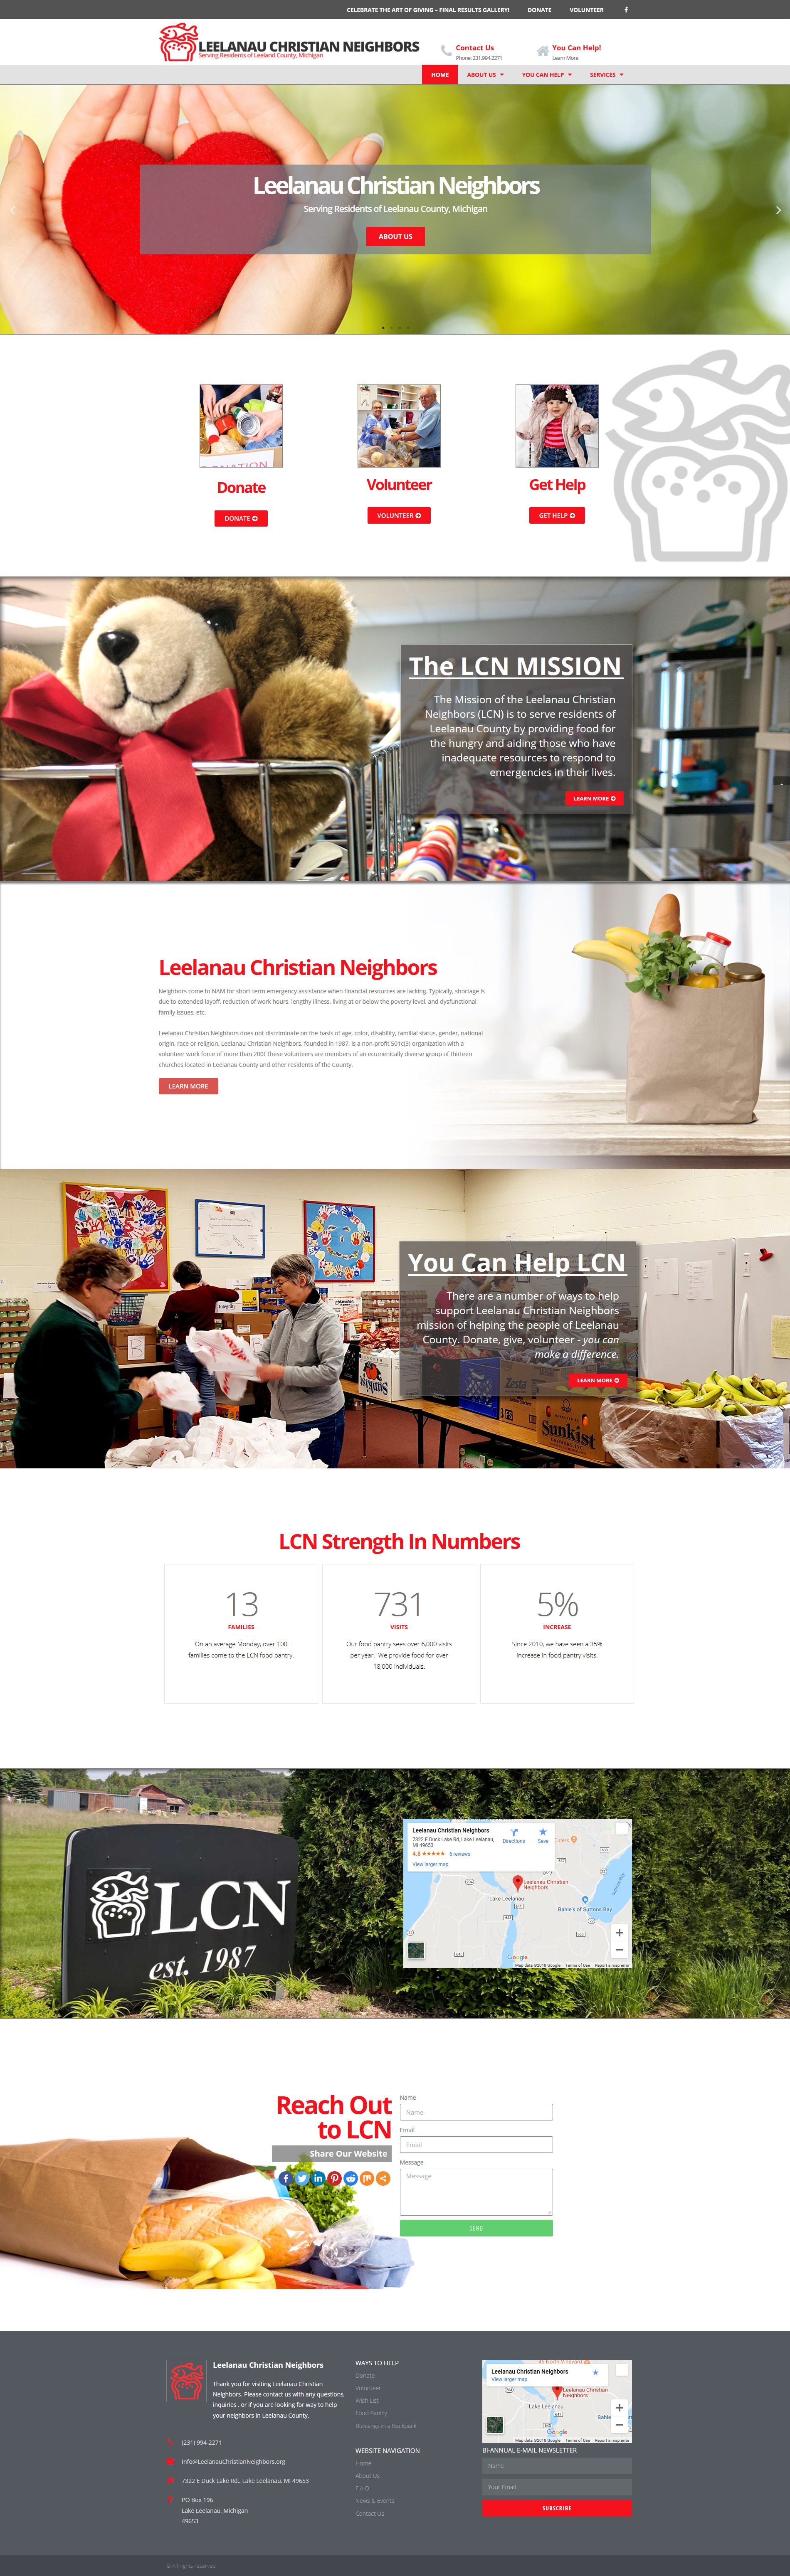 New Website for Leelanau Christian Neighbors